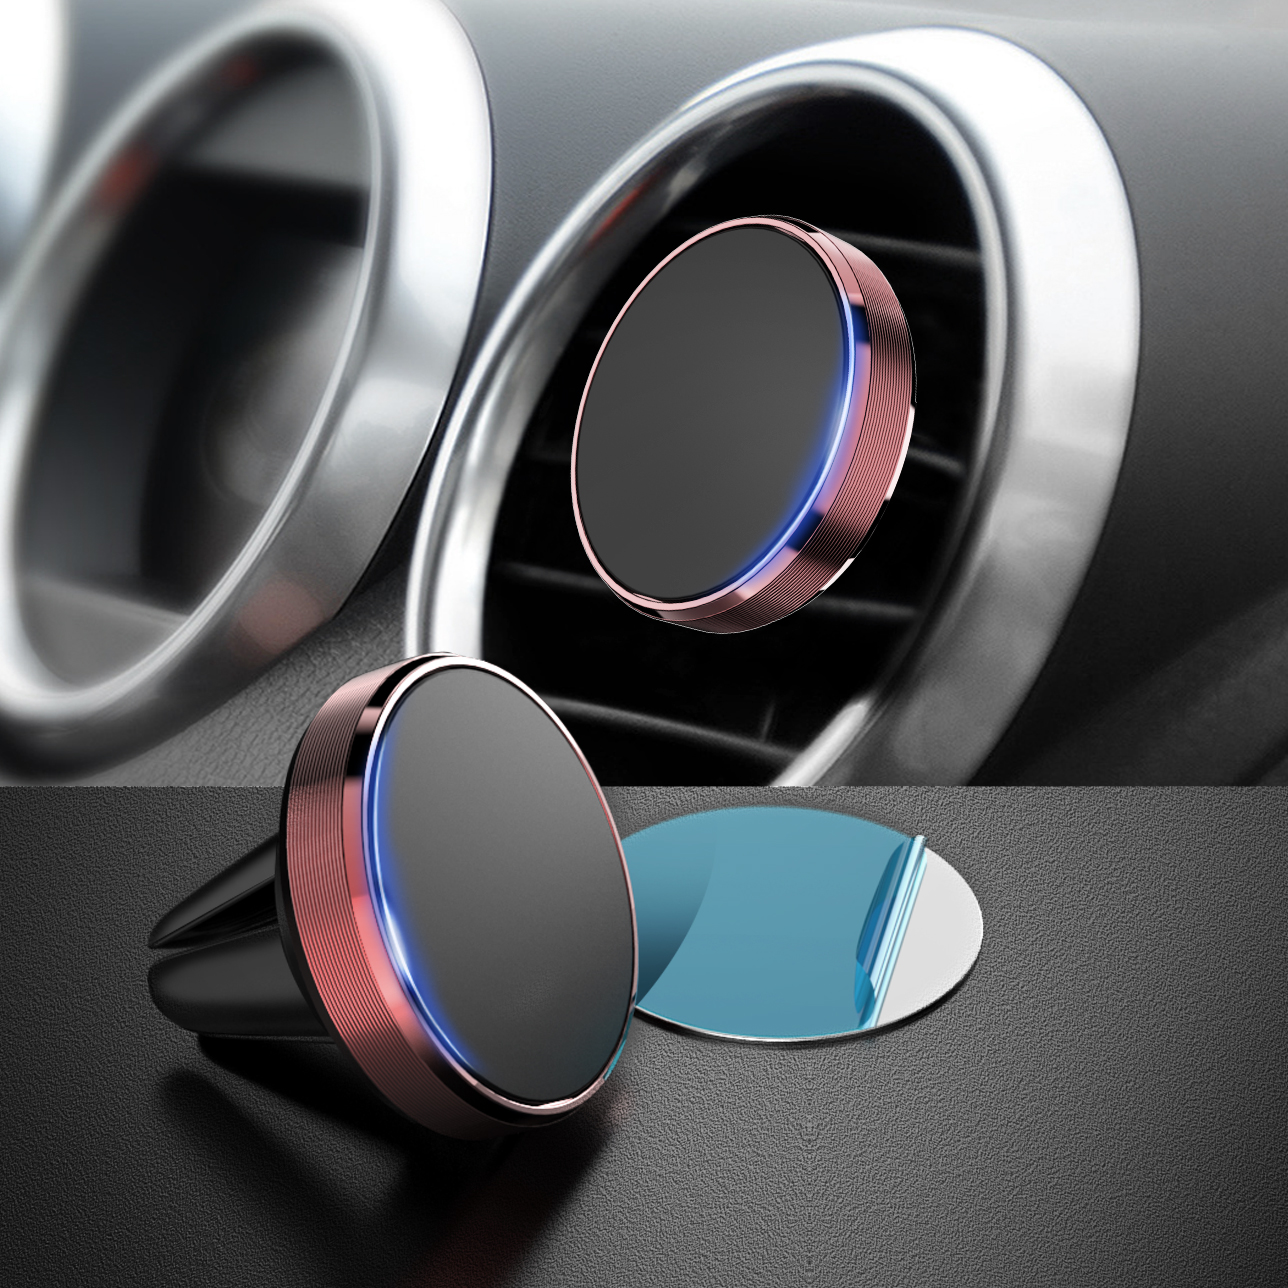 Magnetic Phone Holder In Car Air Vent Mount Universal Stand Magnet Support magnetic holder magnetic holder for phone in car in Phone Holders Stands from Cellphones Telecommunications